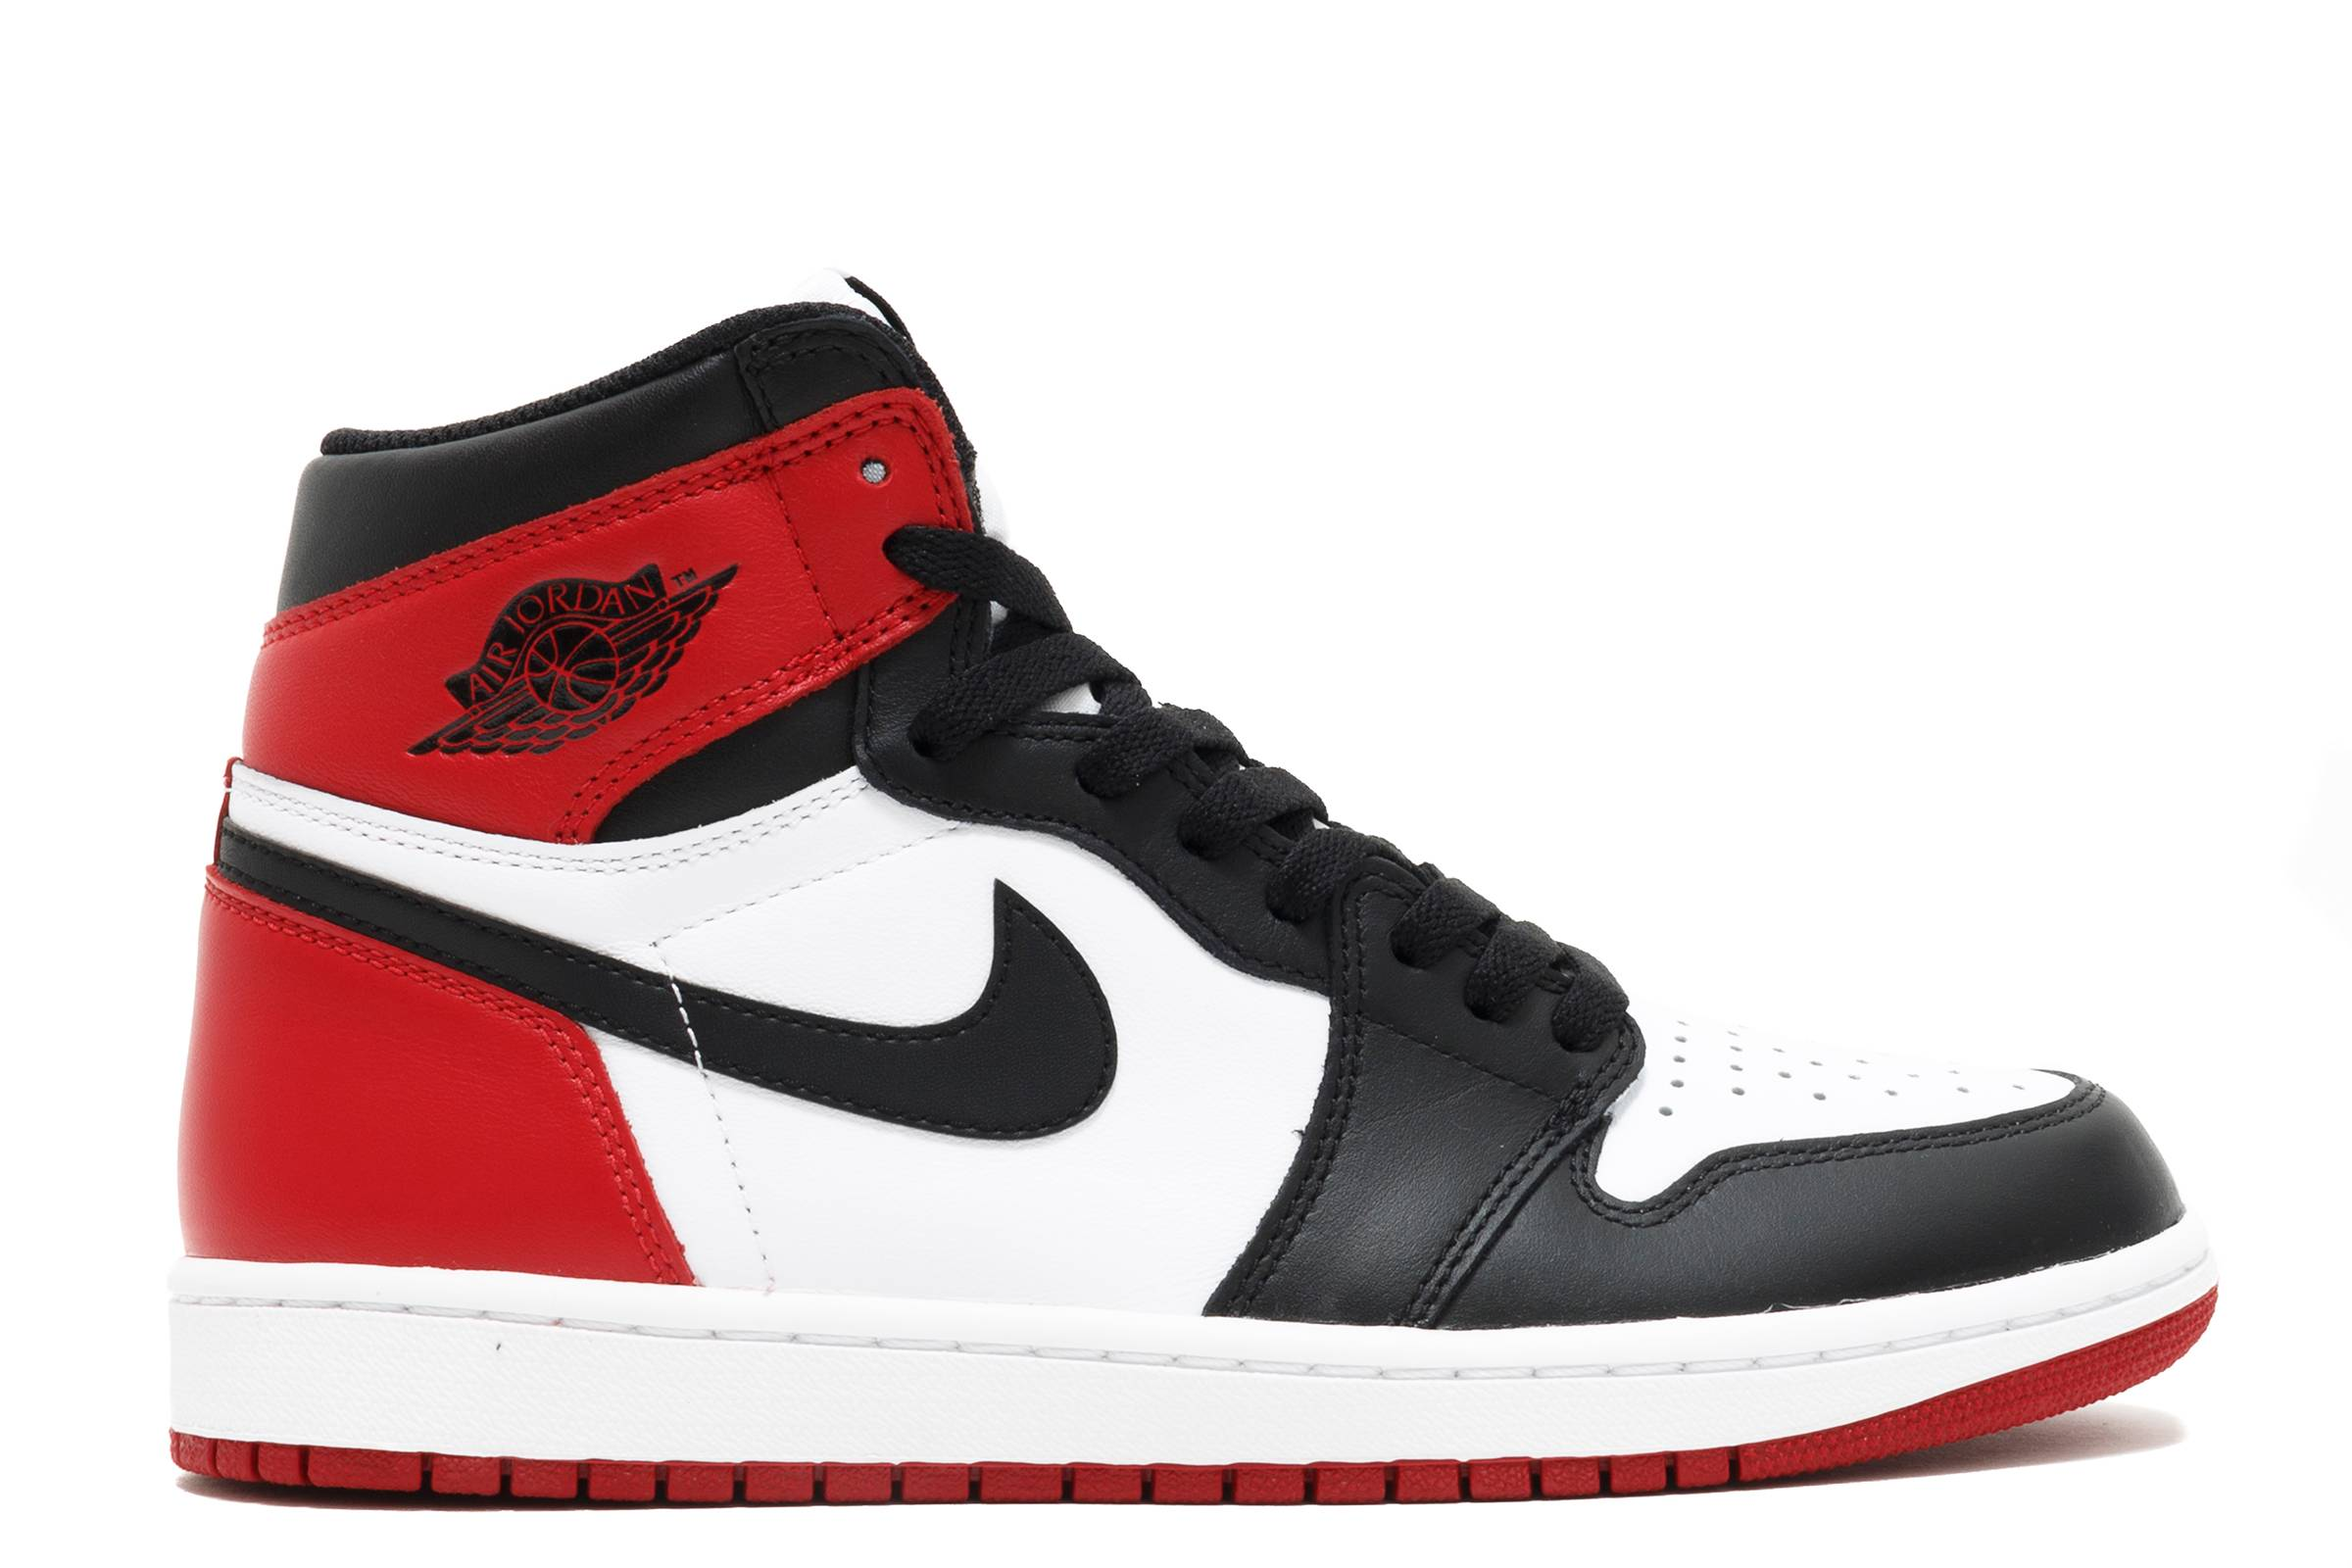 3676e0c7b3ed The One That Started It All  A History of the Jordan 1 - Jordan 1 ...